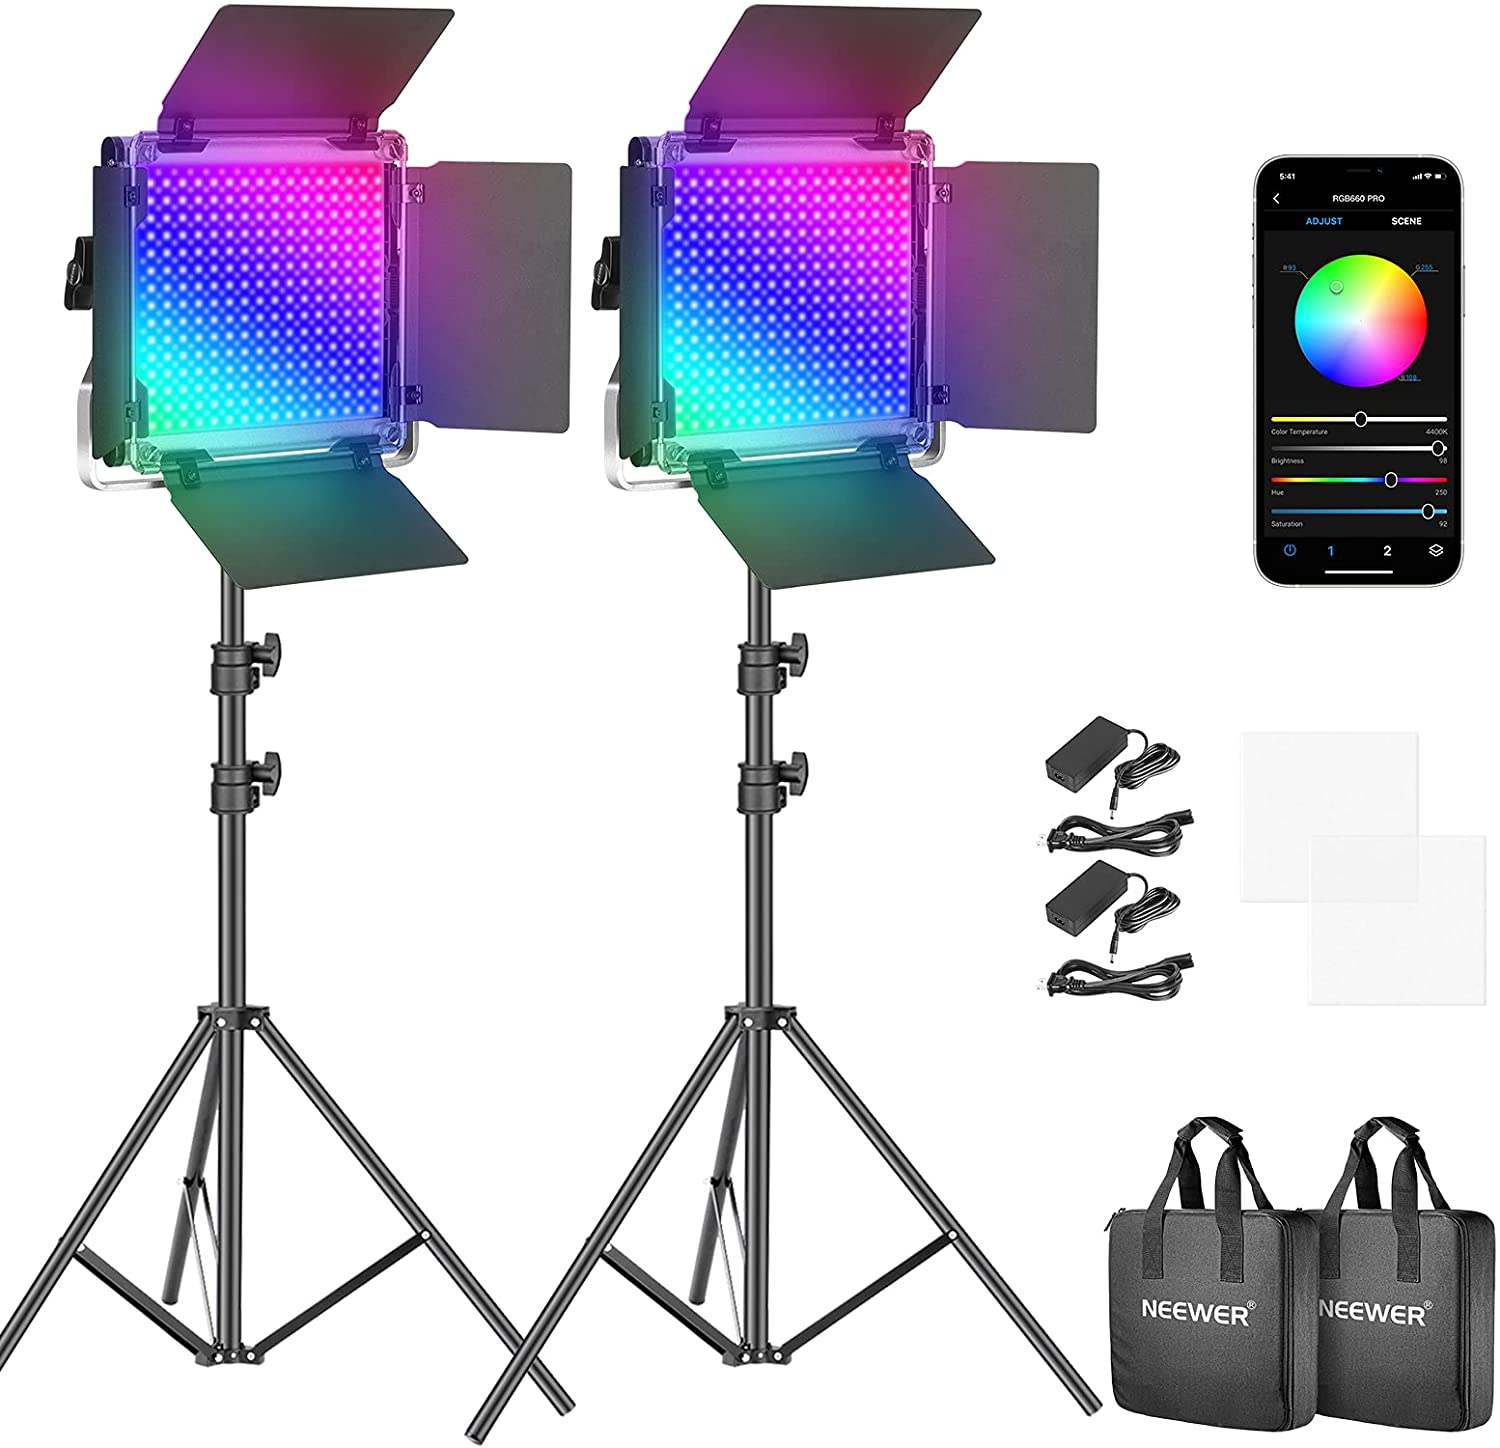 Neewer RGB Led Video Light Color Control with APP quality assurance Selling 360°Full